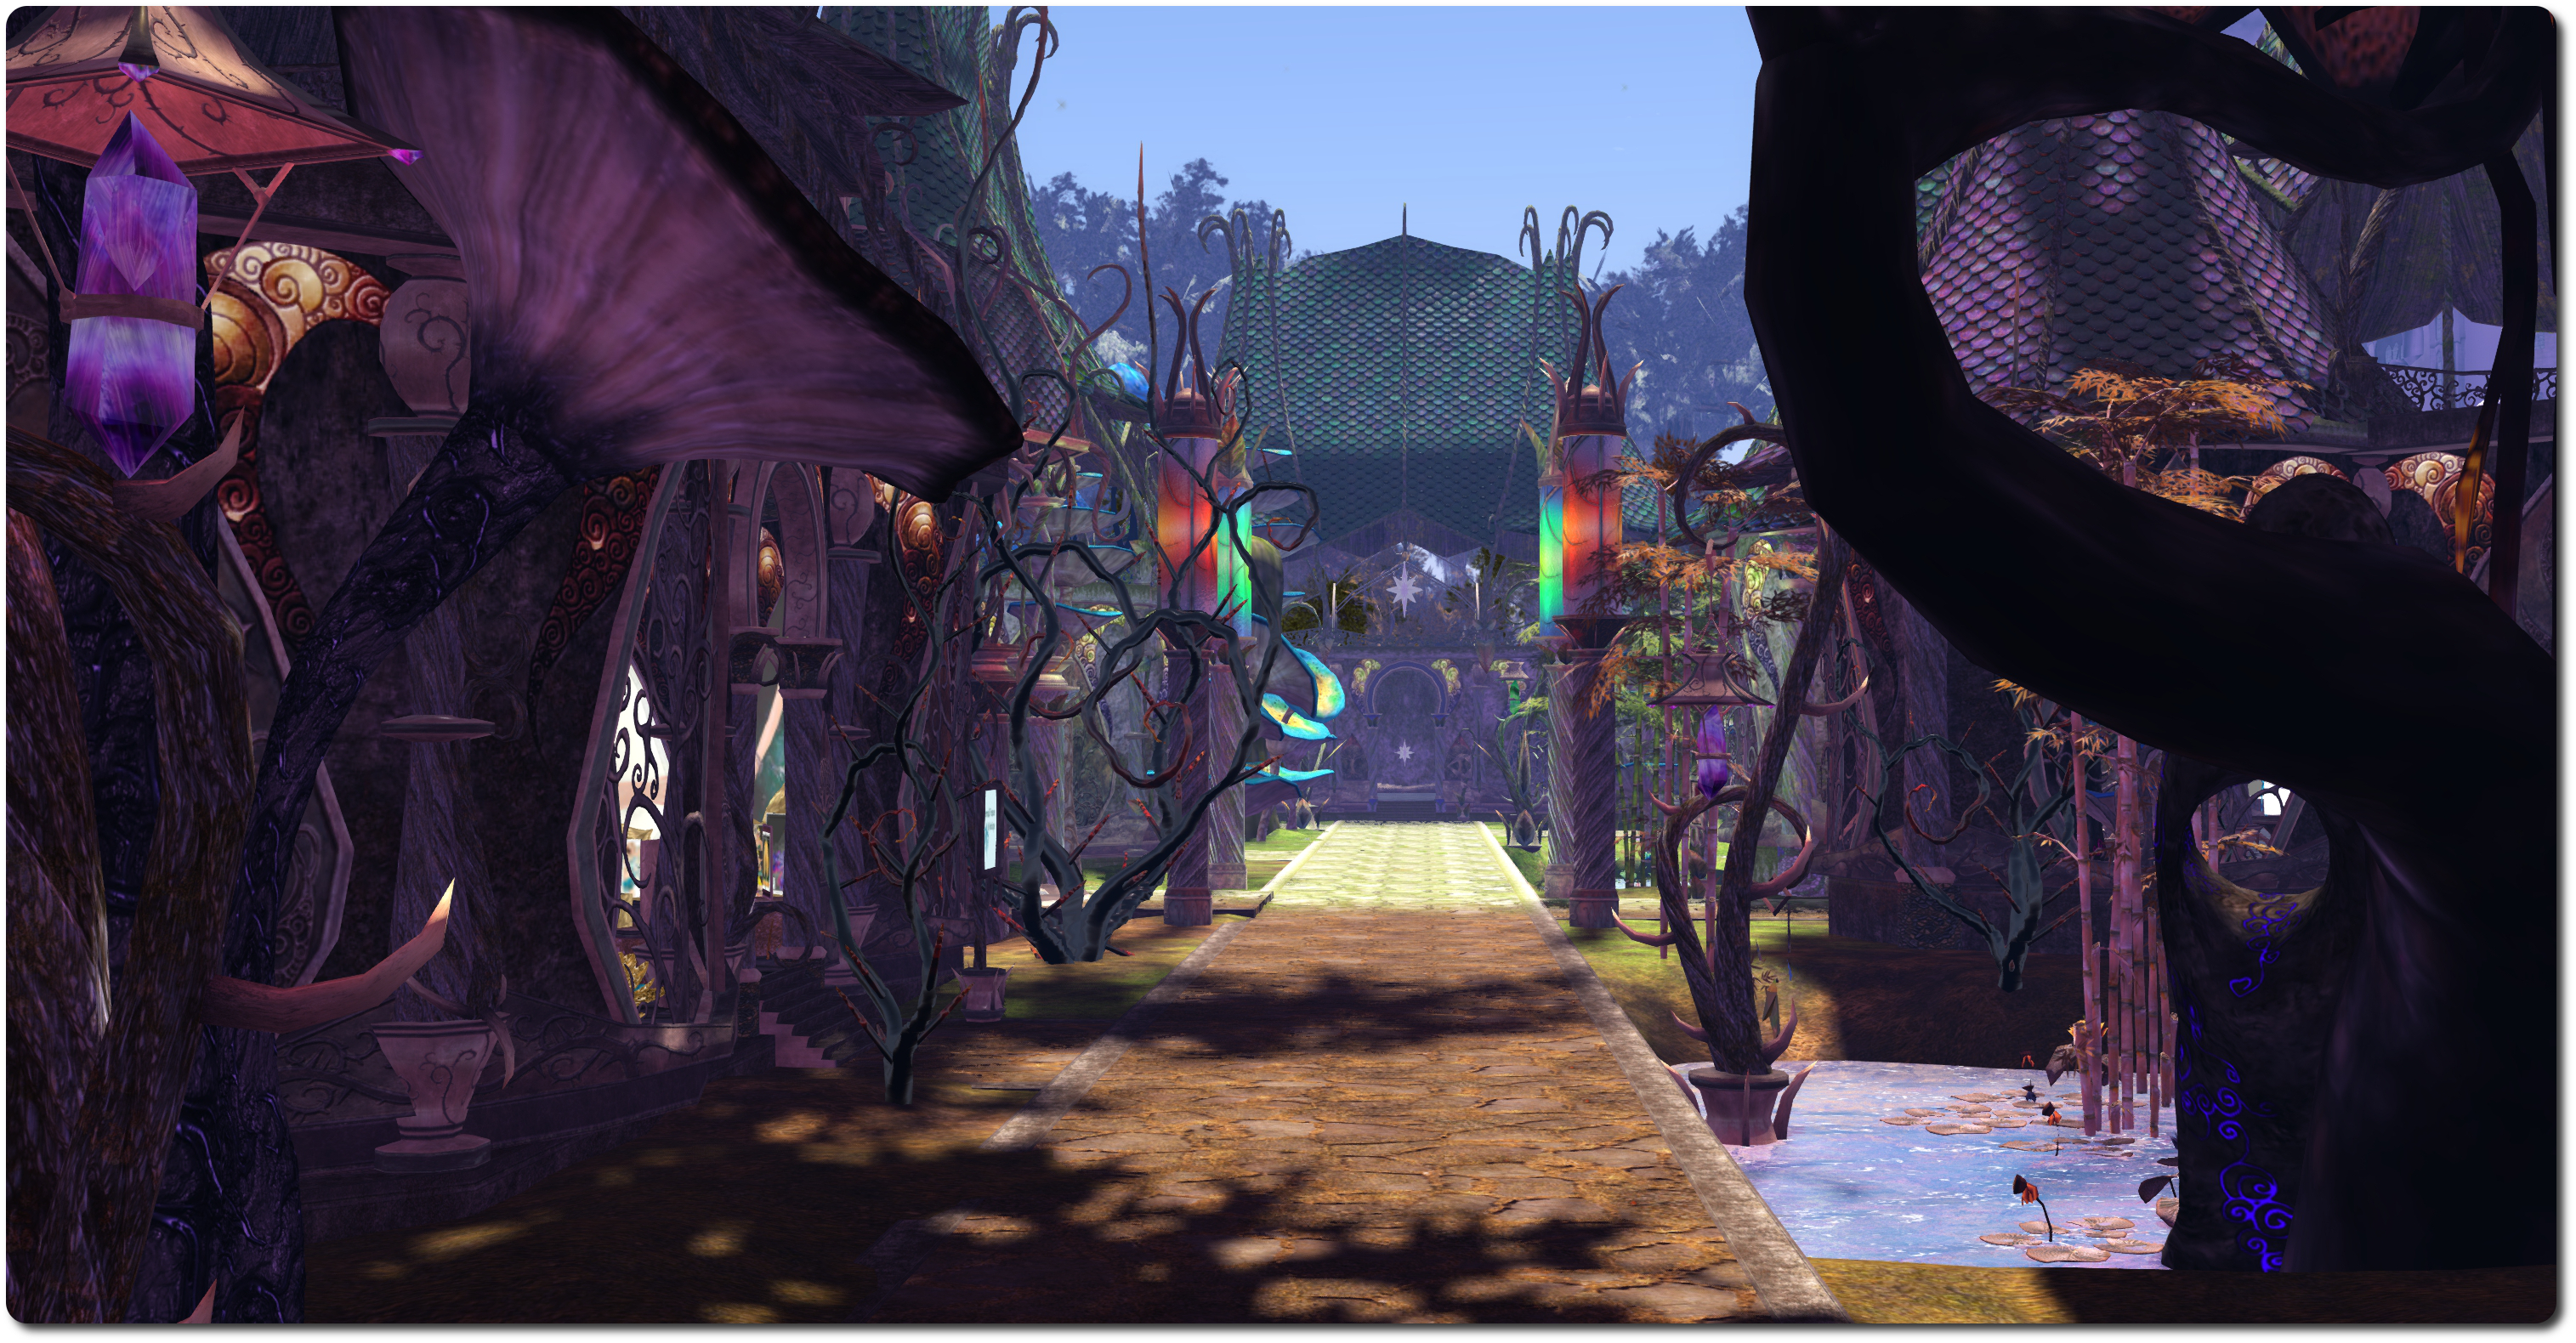 Fantasy Faire 2014: The Faery Court, Inara Pey on Flickr